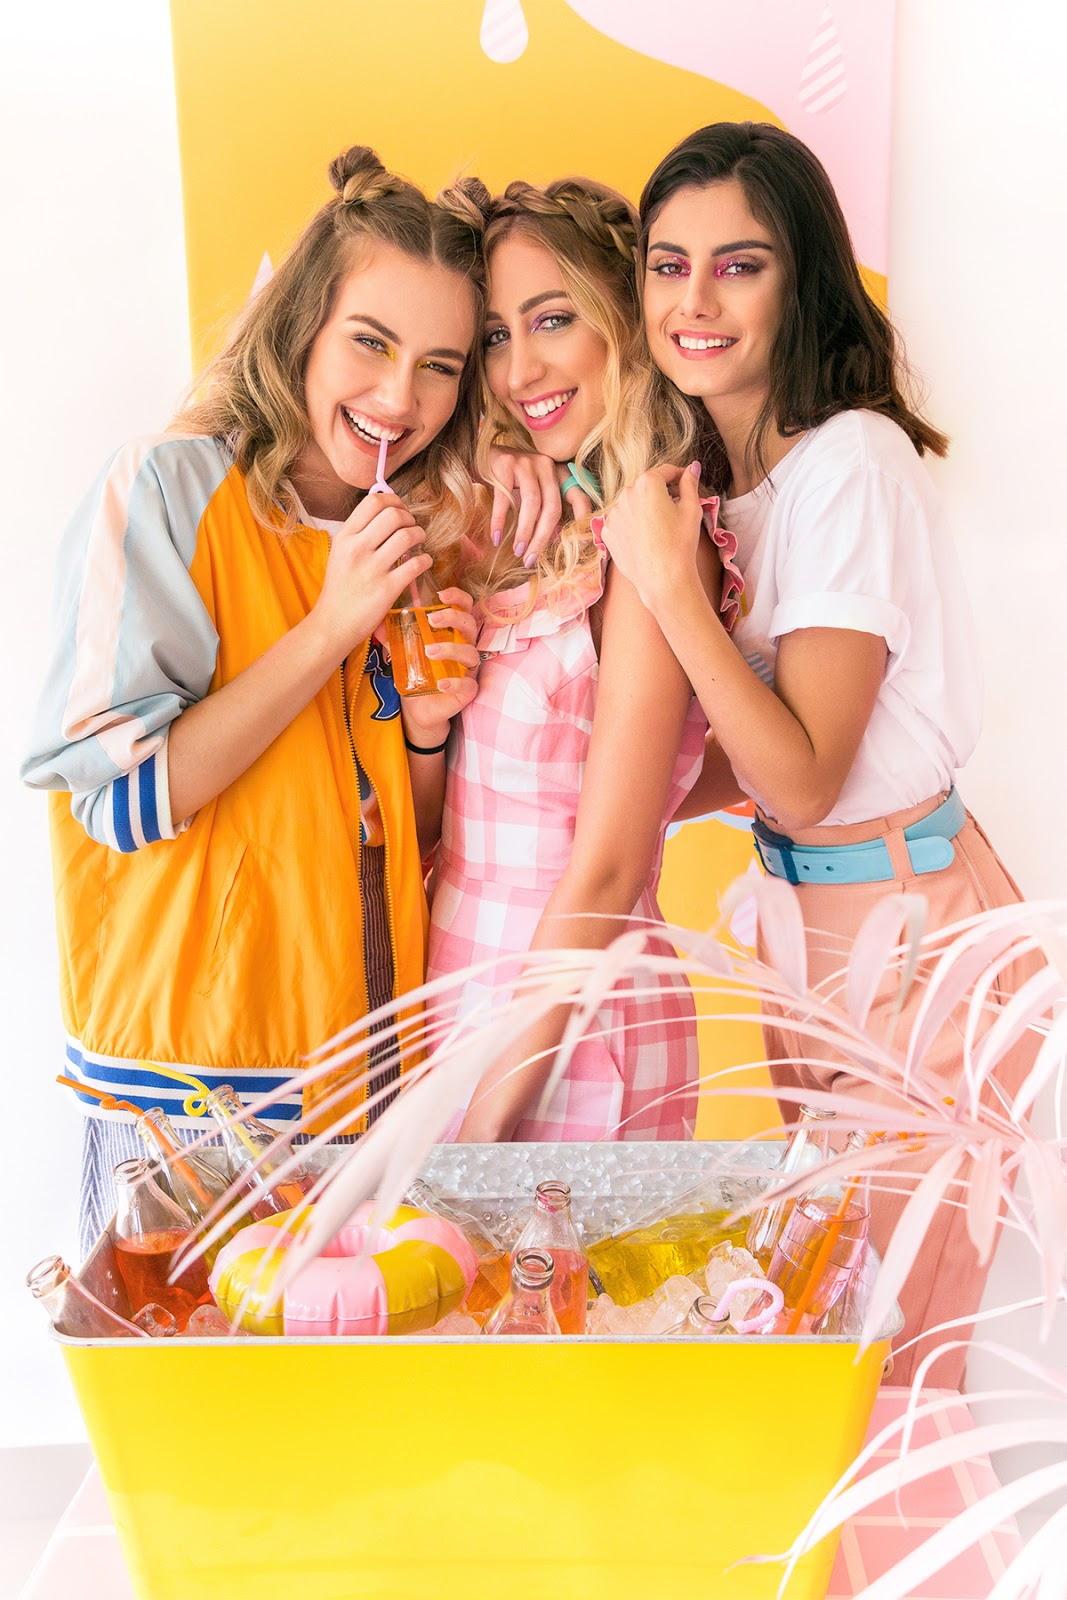 lorena loschi, ju viegas, gabi paraizo museum of ice cream party